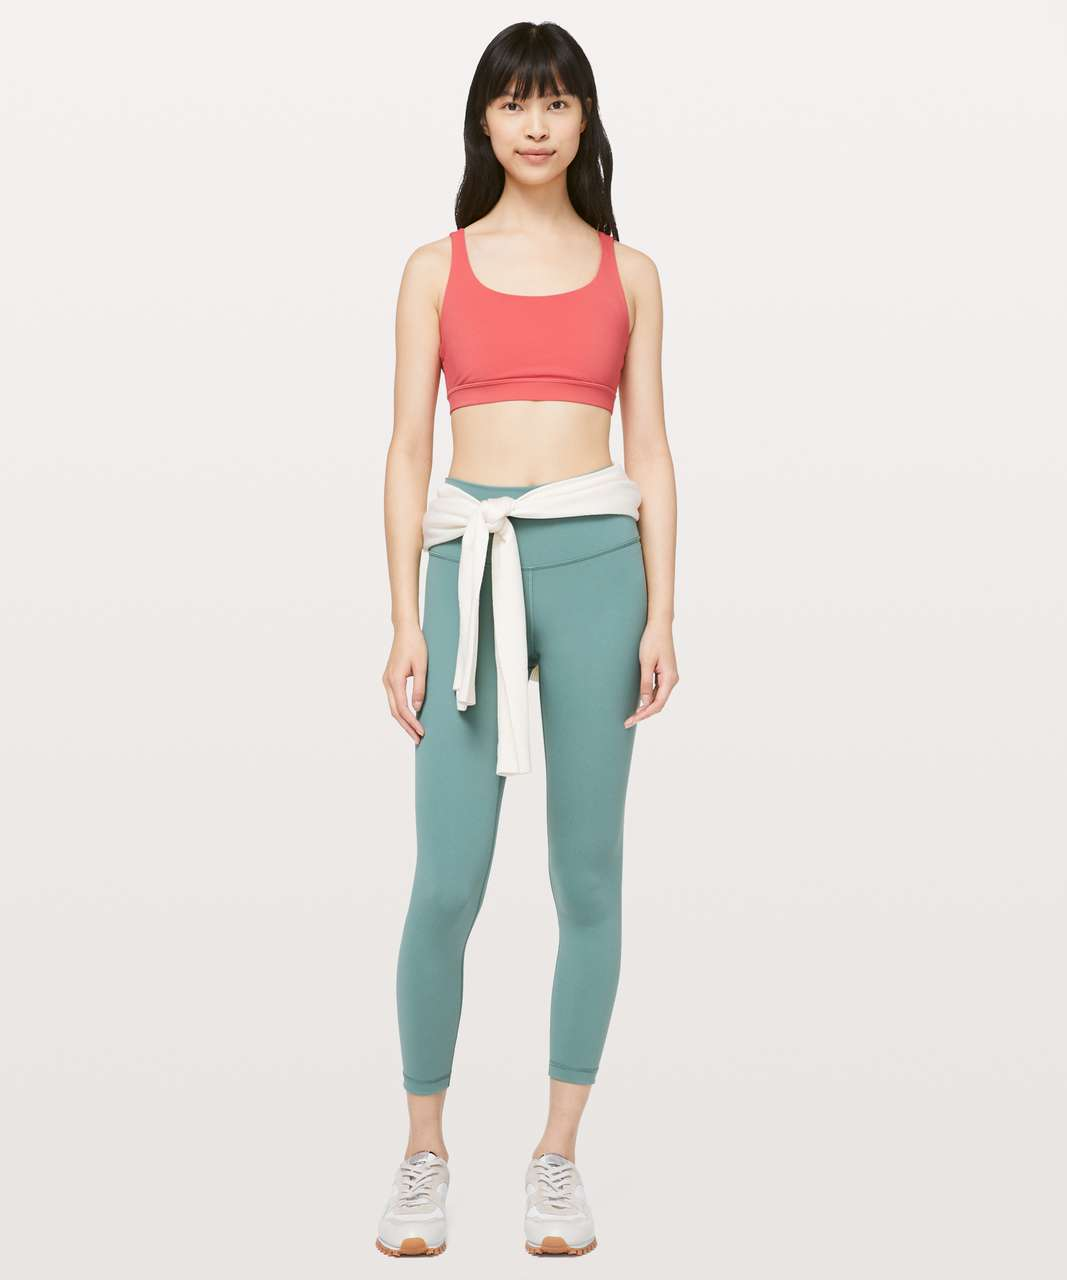 "Lululemon Wunder Under High-Rise 7/8 Tight *Full-On Luxtreme 25"" - Frosted Pine"